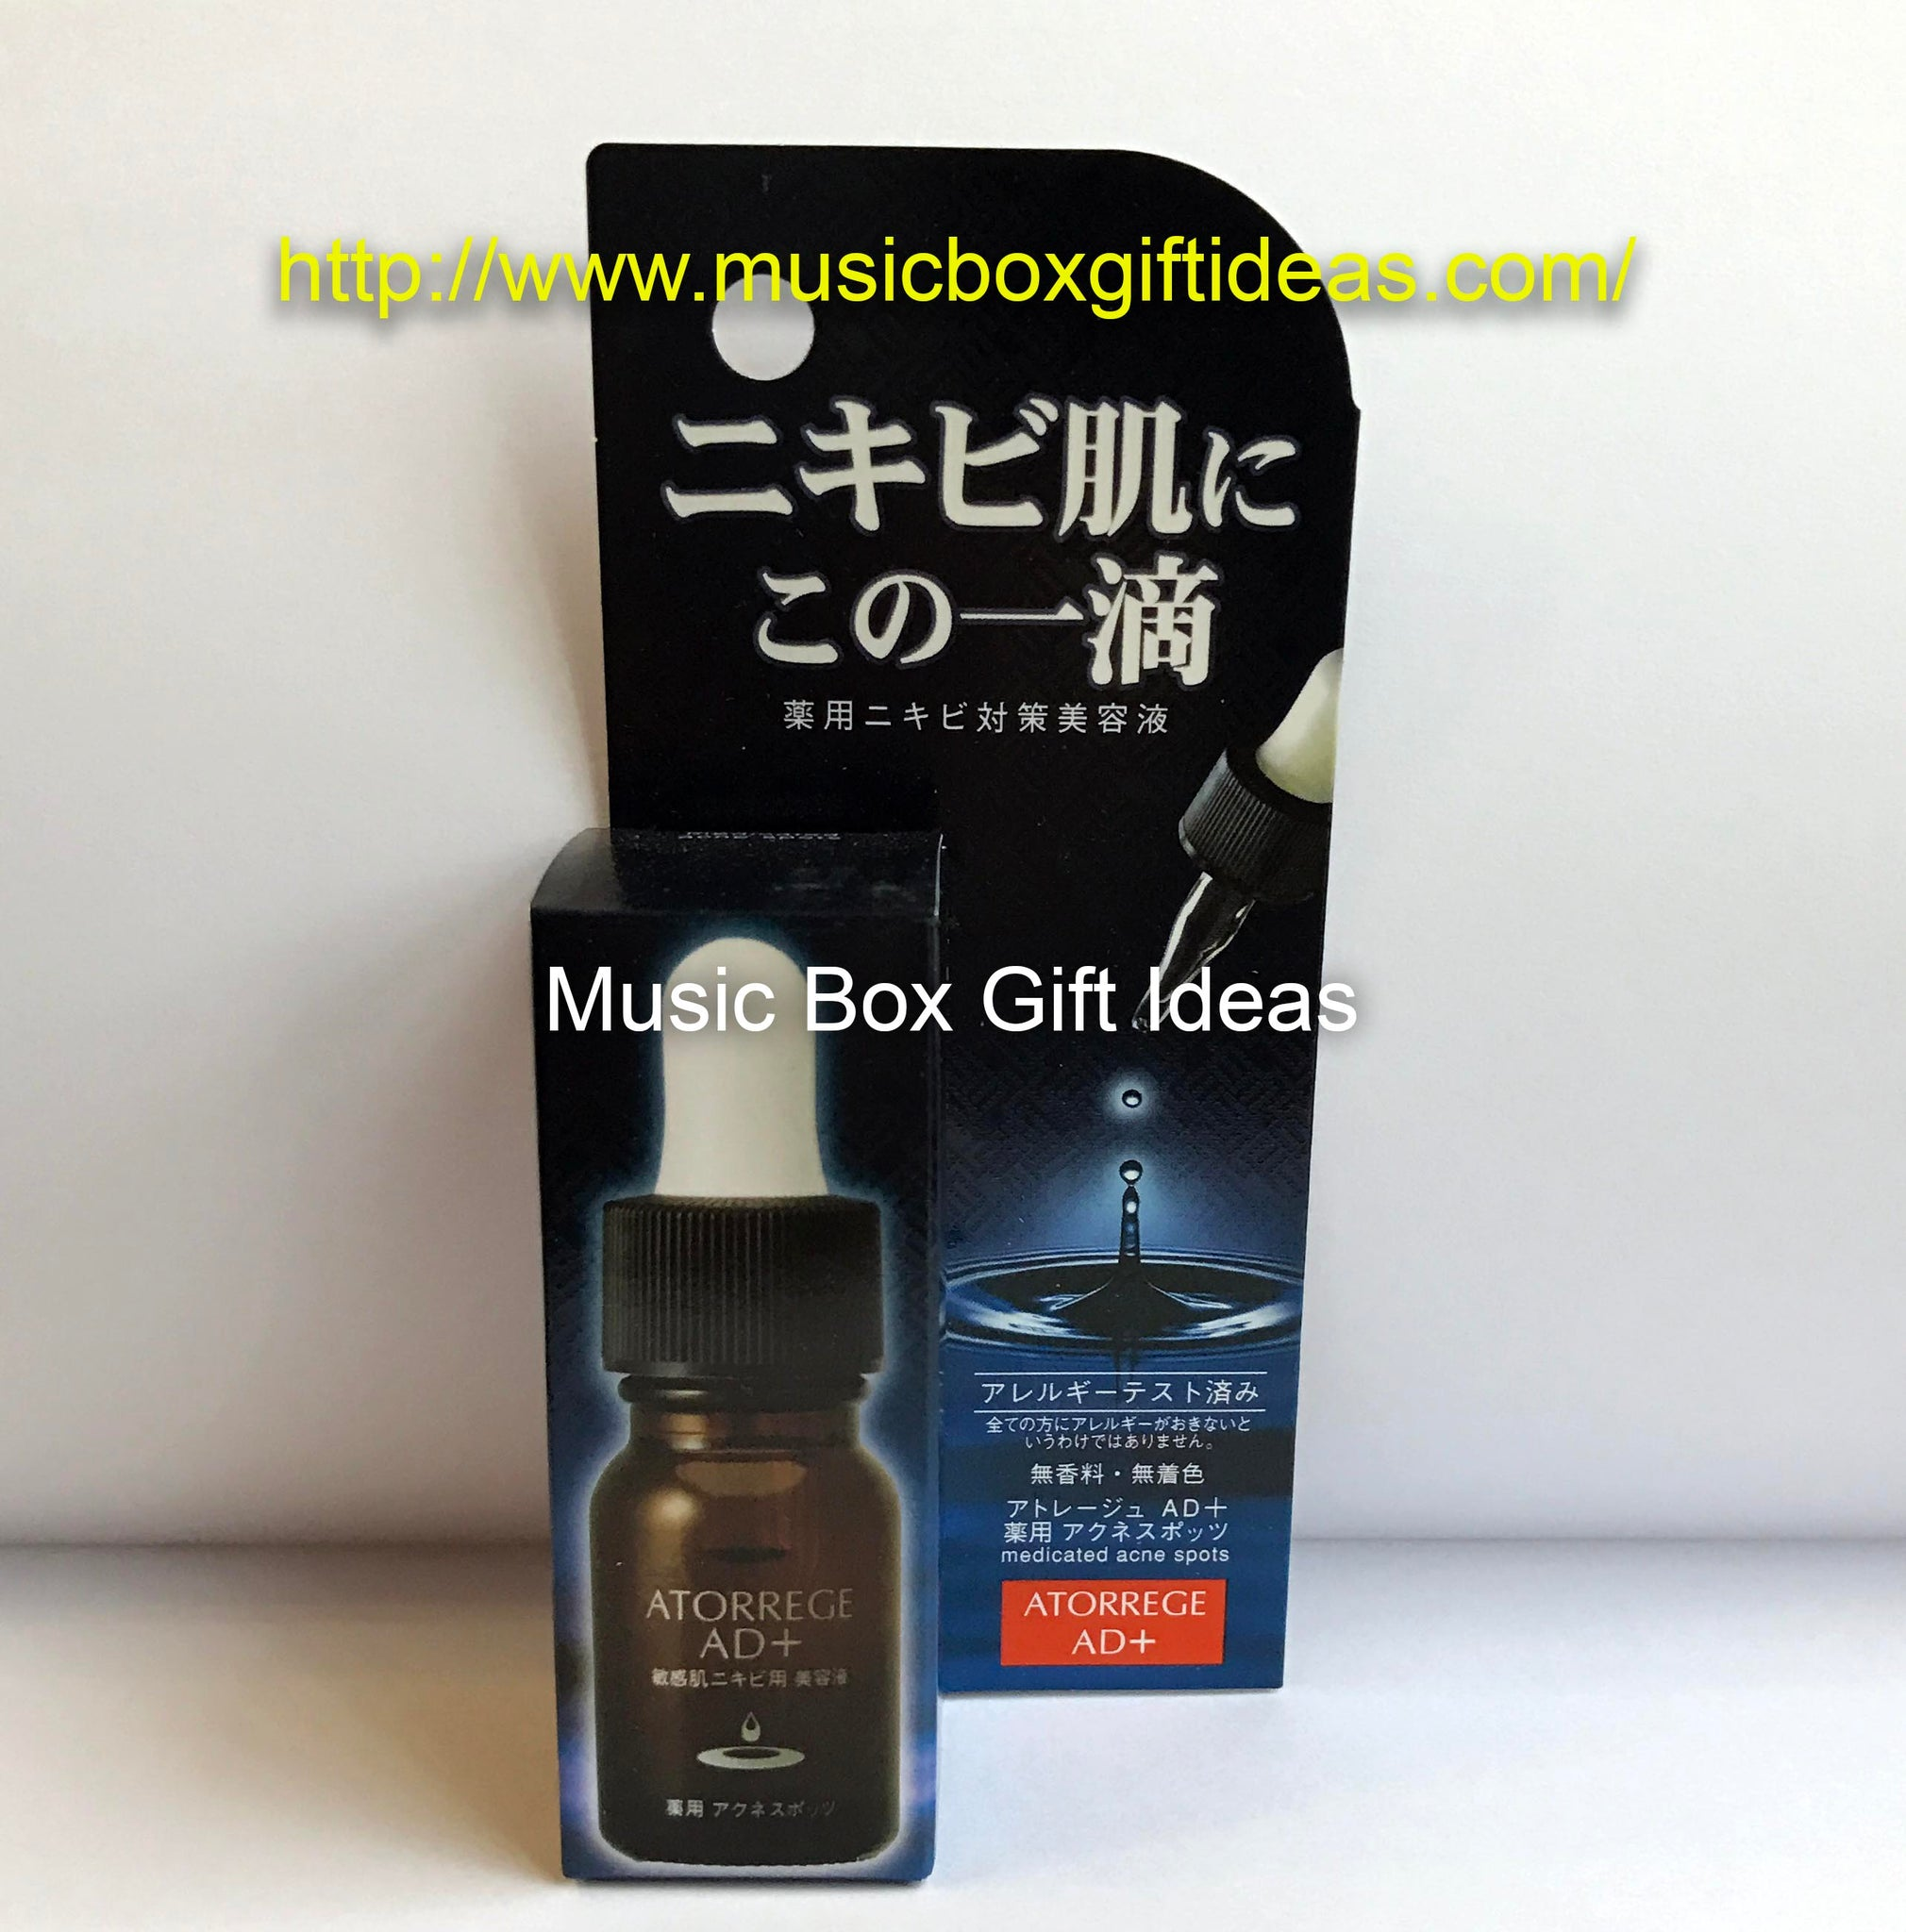 Atorrege AD Medicated Acne Spots 10ml Serum Treatment Sensitive Skin - Music Box Gift Ideas